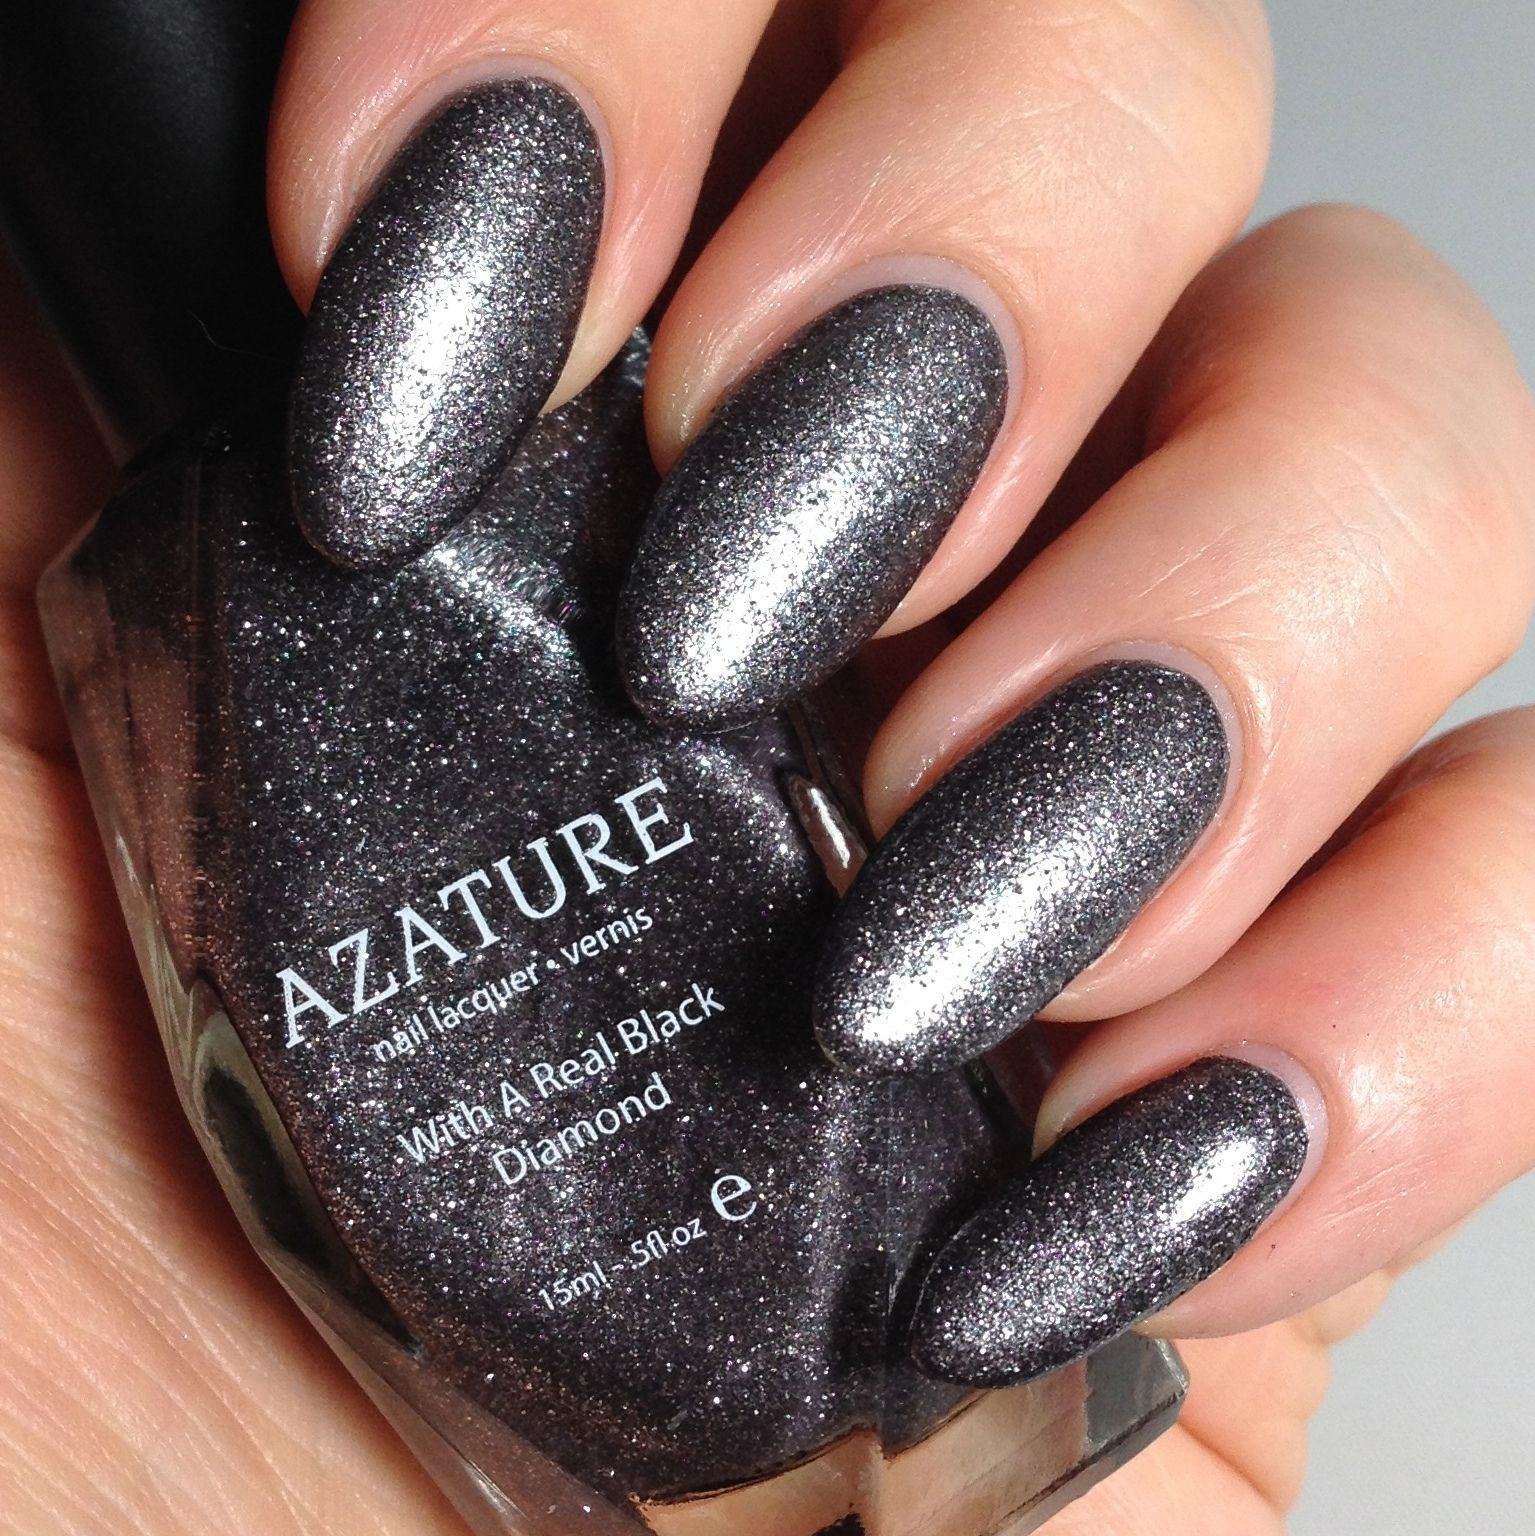 Azature Black Diamond Nail Polish In Platinum The Entire 40 Colour Range Available Uk Exclusively From Houseofrokoko